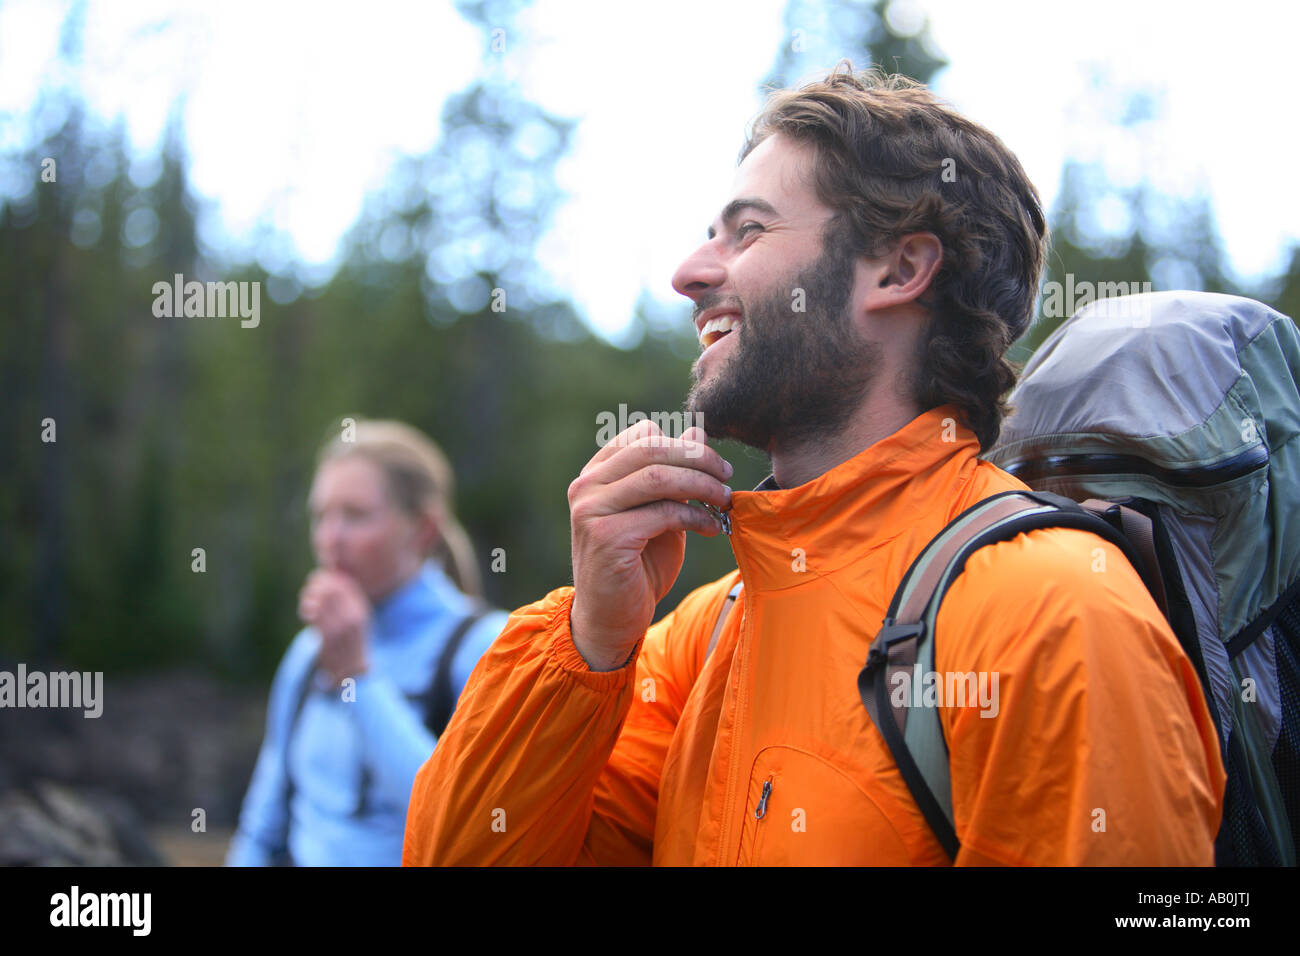 Couple gearing up for hiking trip - Stock Image